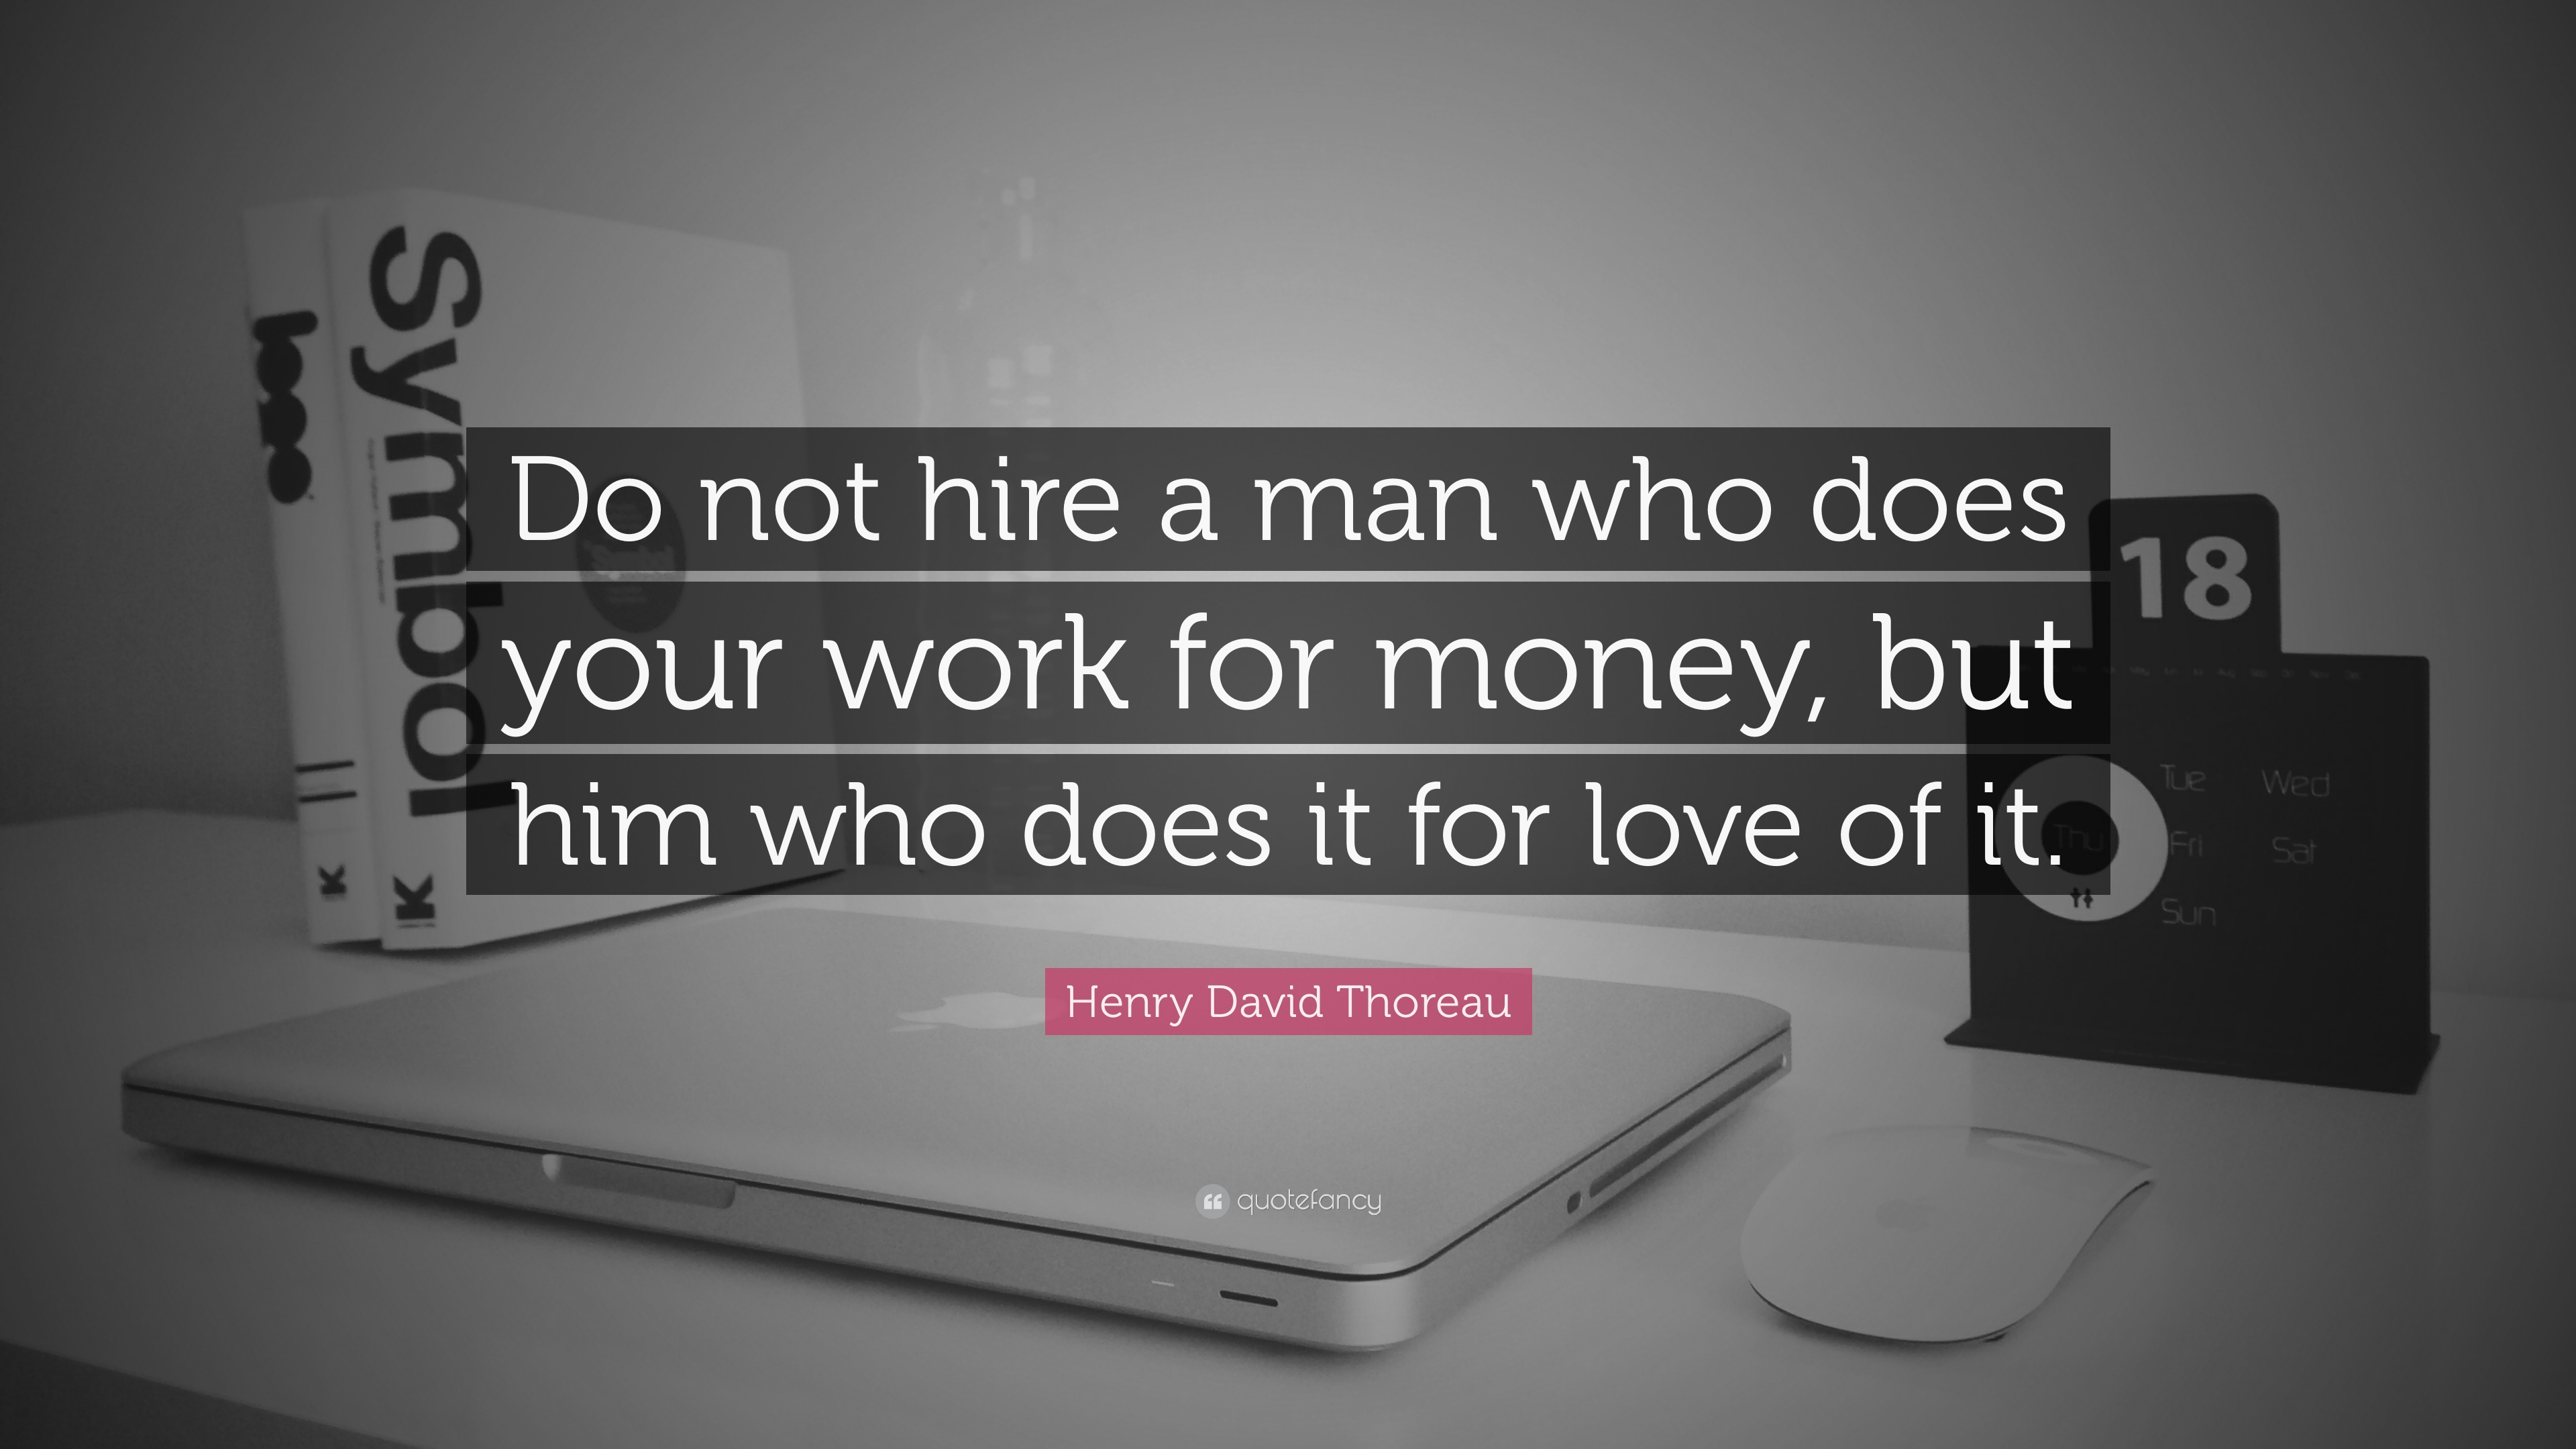 henry david thoreau quote do not hire a man who does your work henry david thoreau quote do not hire a man who does your work for